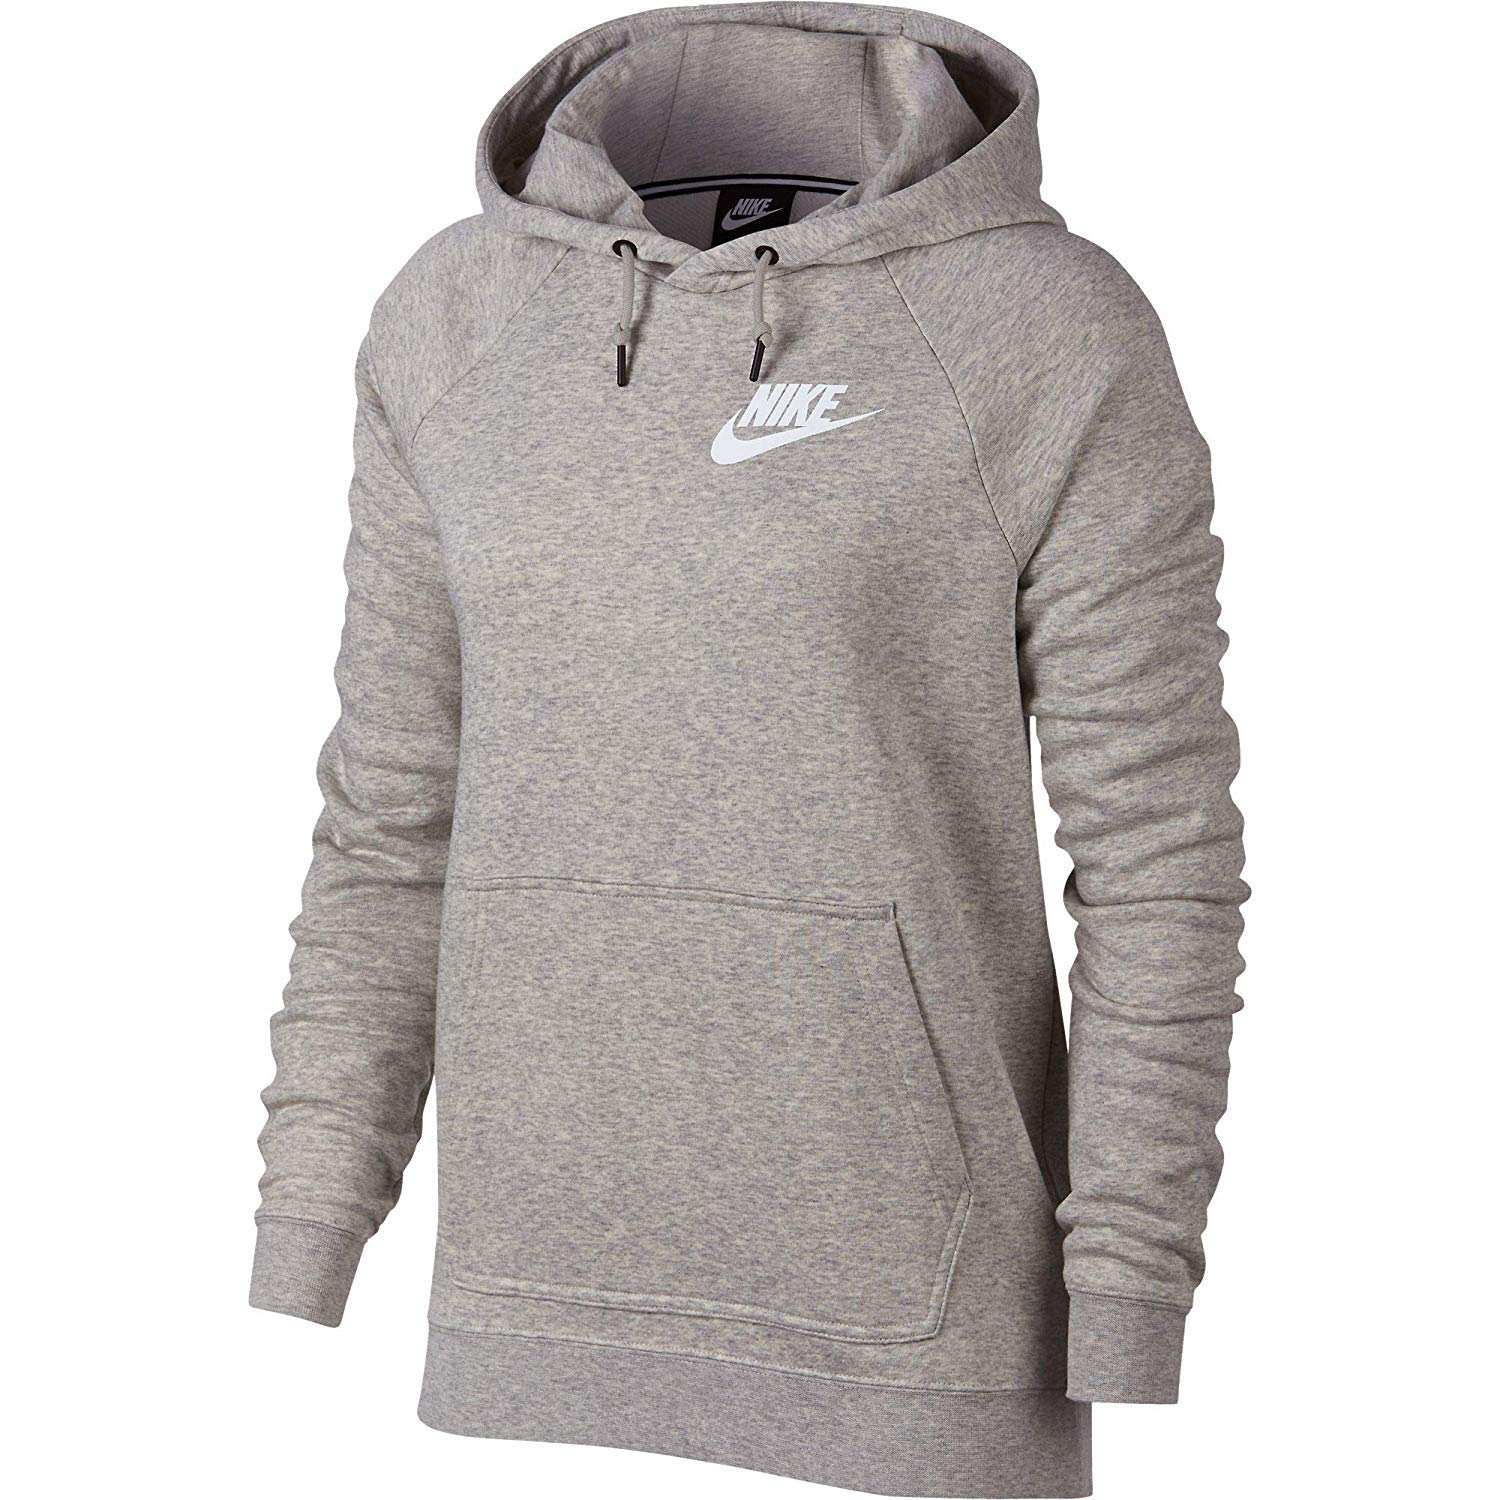 NIKE Sportswear Rally Women's Hoodie Grey Heather/Pale Grey/White aj6315-050 (Size S)